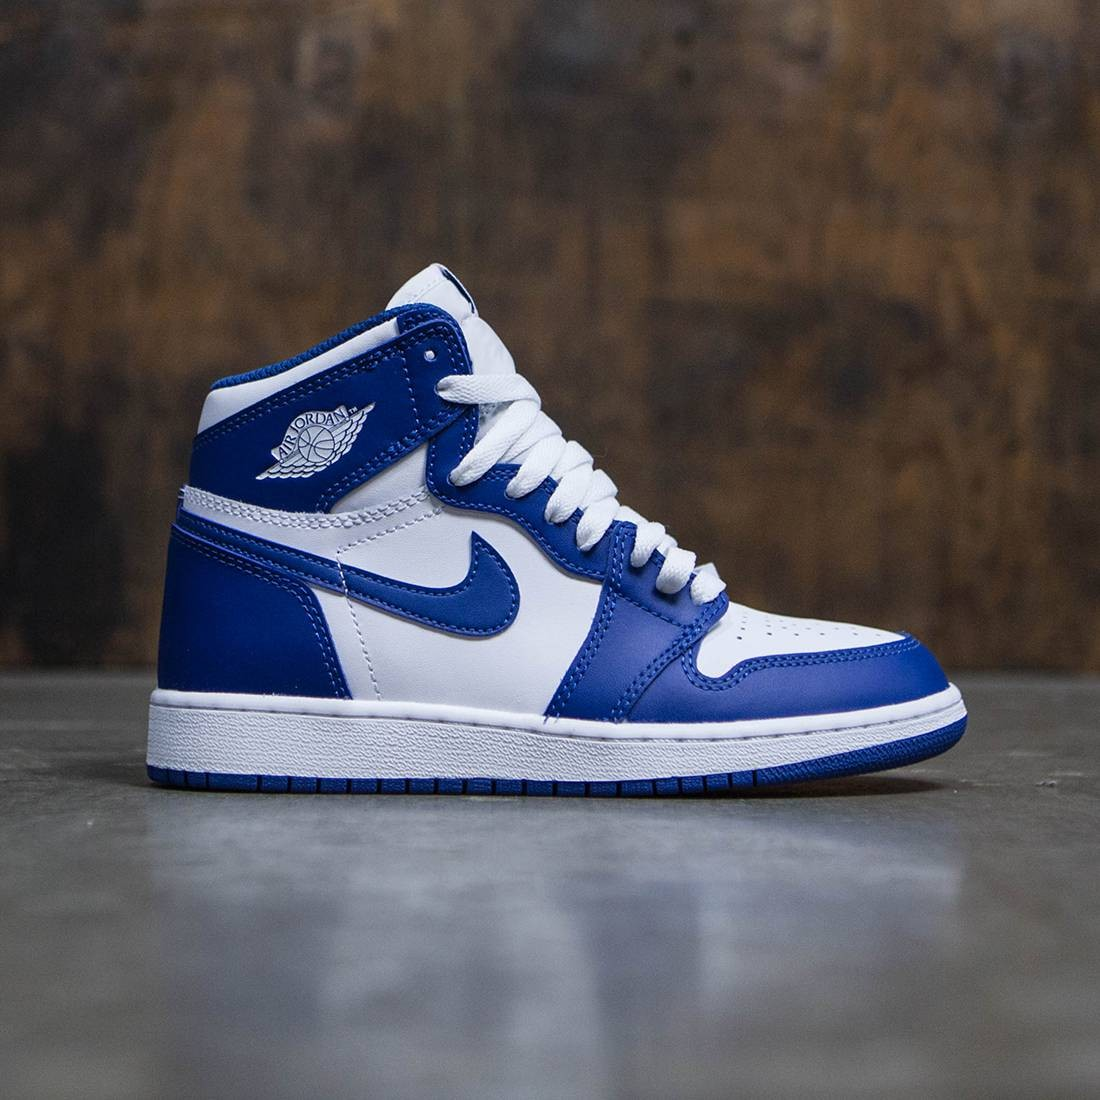 ed705a879f6f Jordan Big Kids Air Jordan 1 Retro High OG (GS) (white   stormblue)